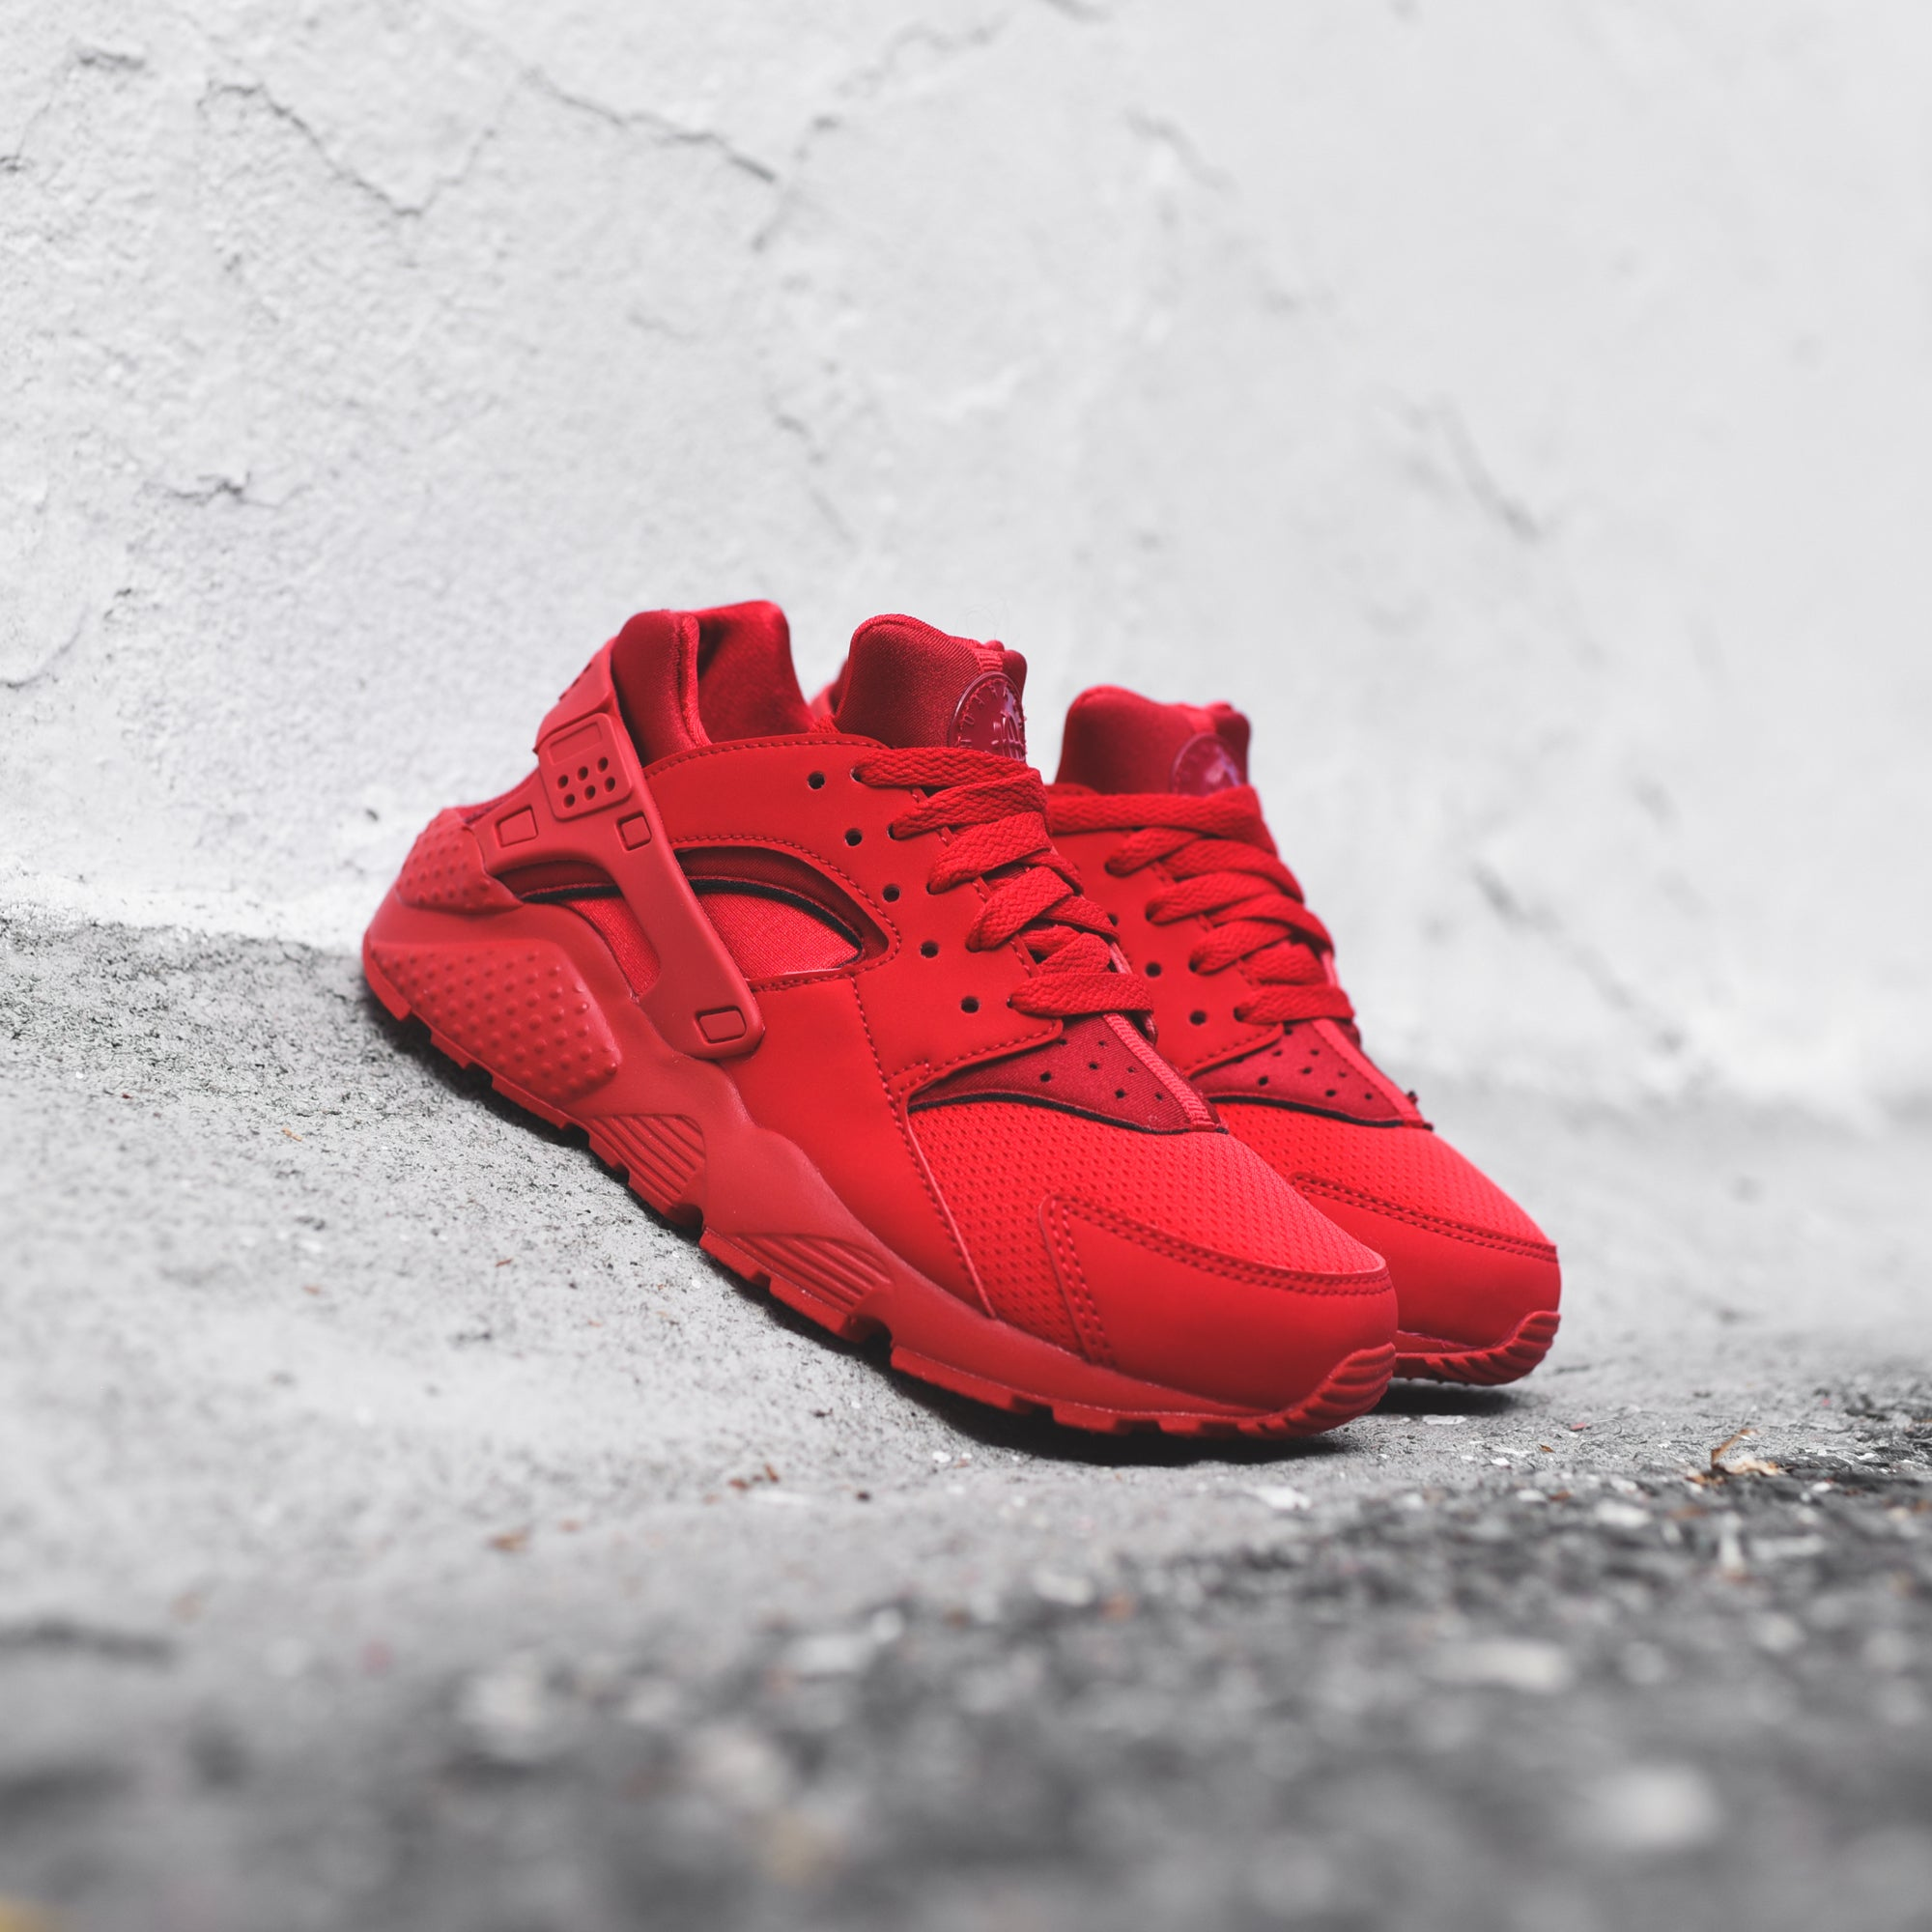 527e9b147 ... promo code for nike grade school huarache run university red d5027 c7738